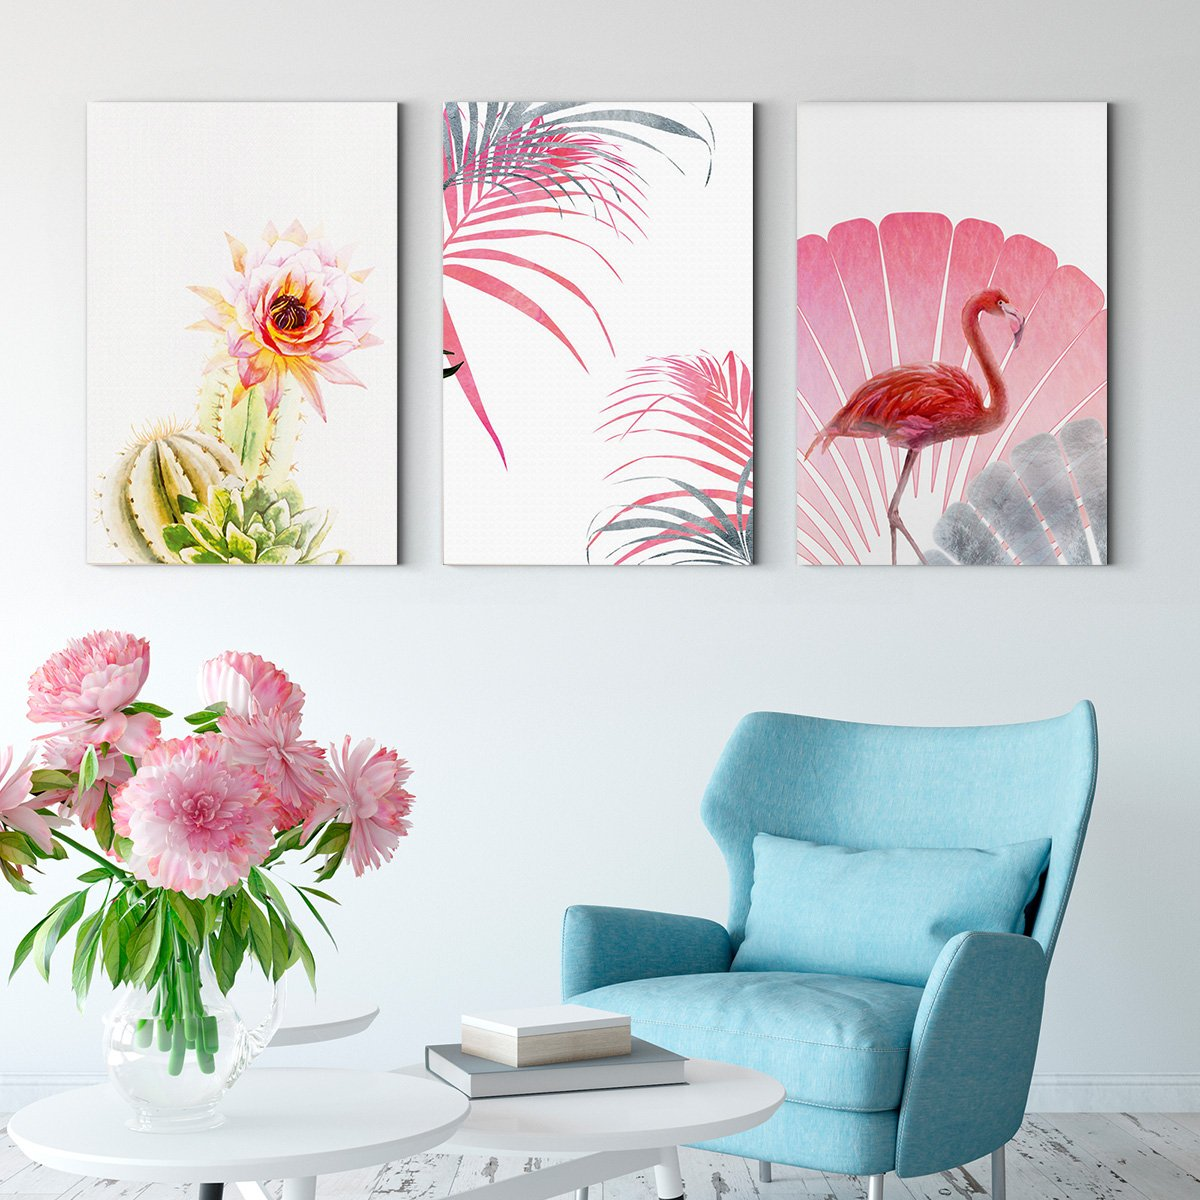 Flamingo flowers - abstract decorative painting - living room - Multi Panel Wall Art